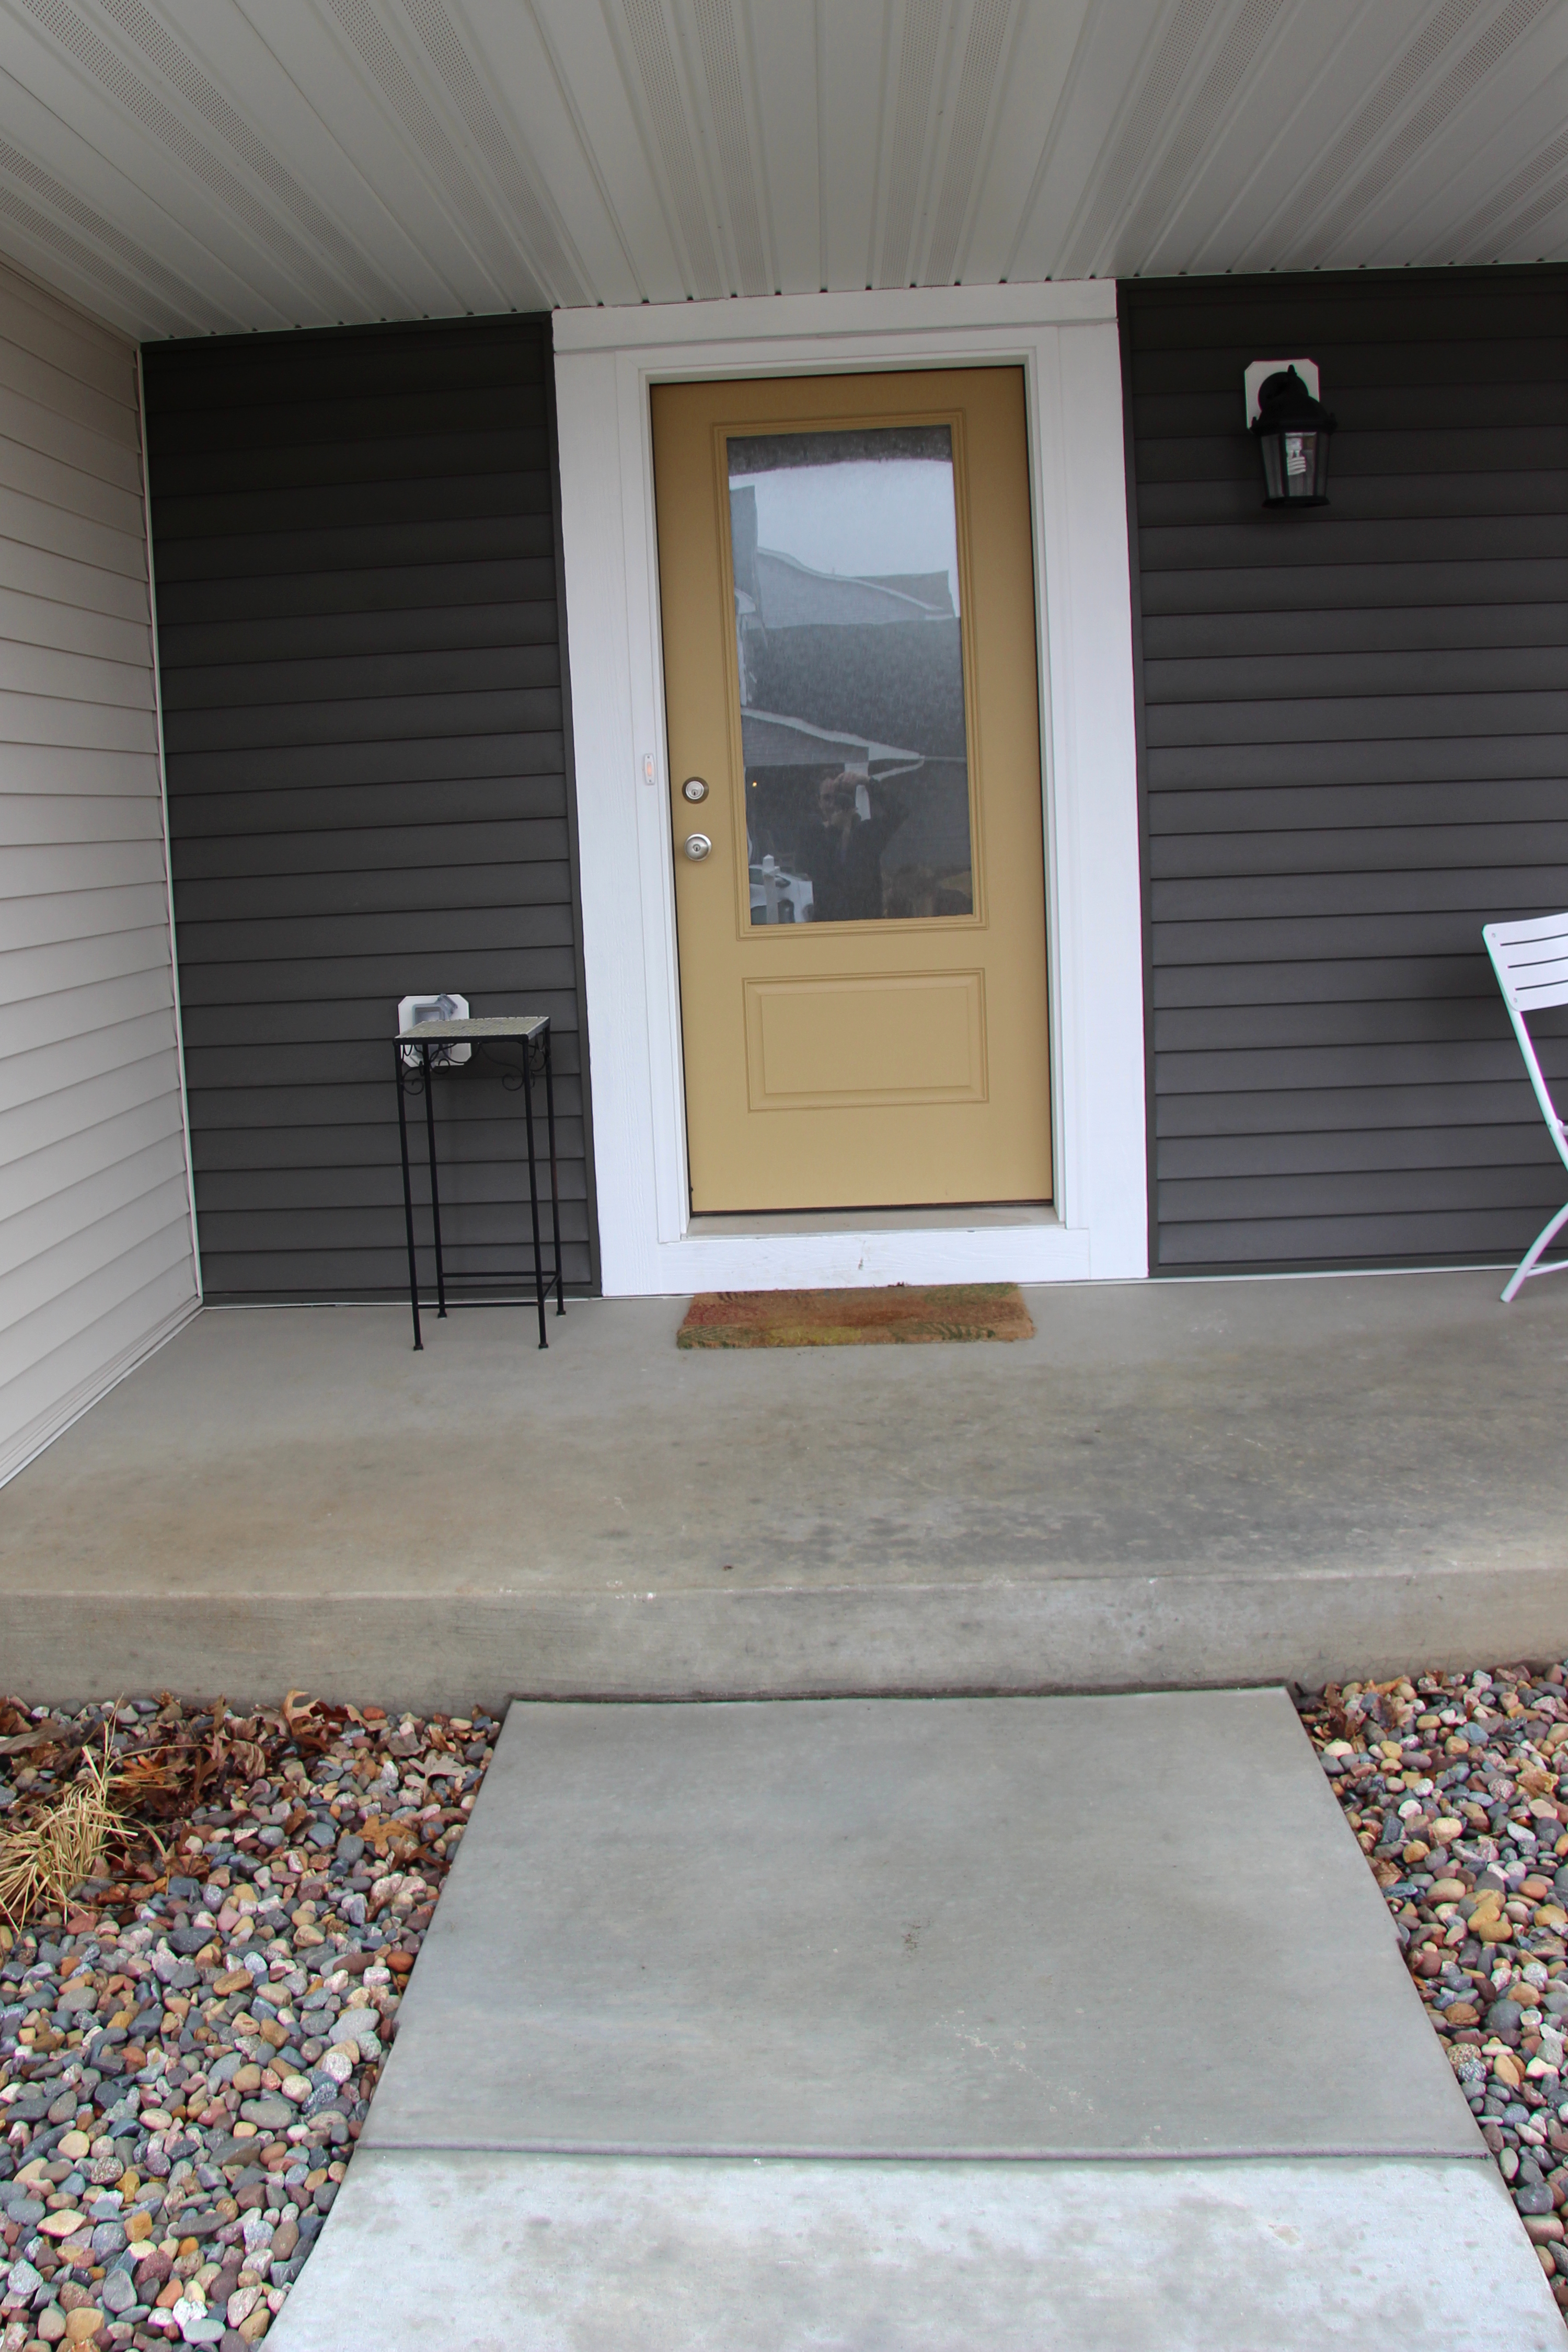 Zero Step Entrances Are Possible And Cost Effective